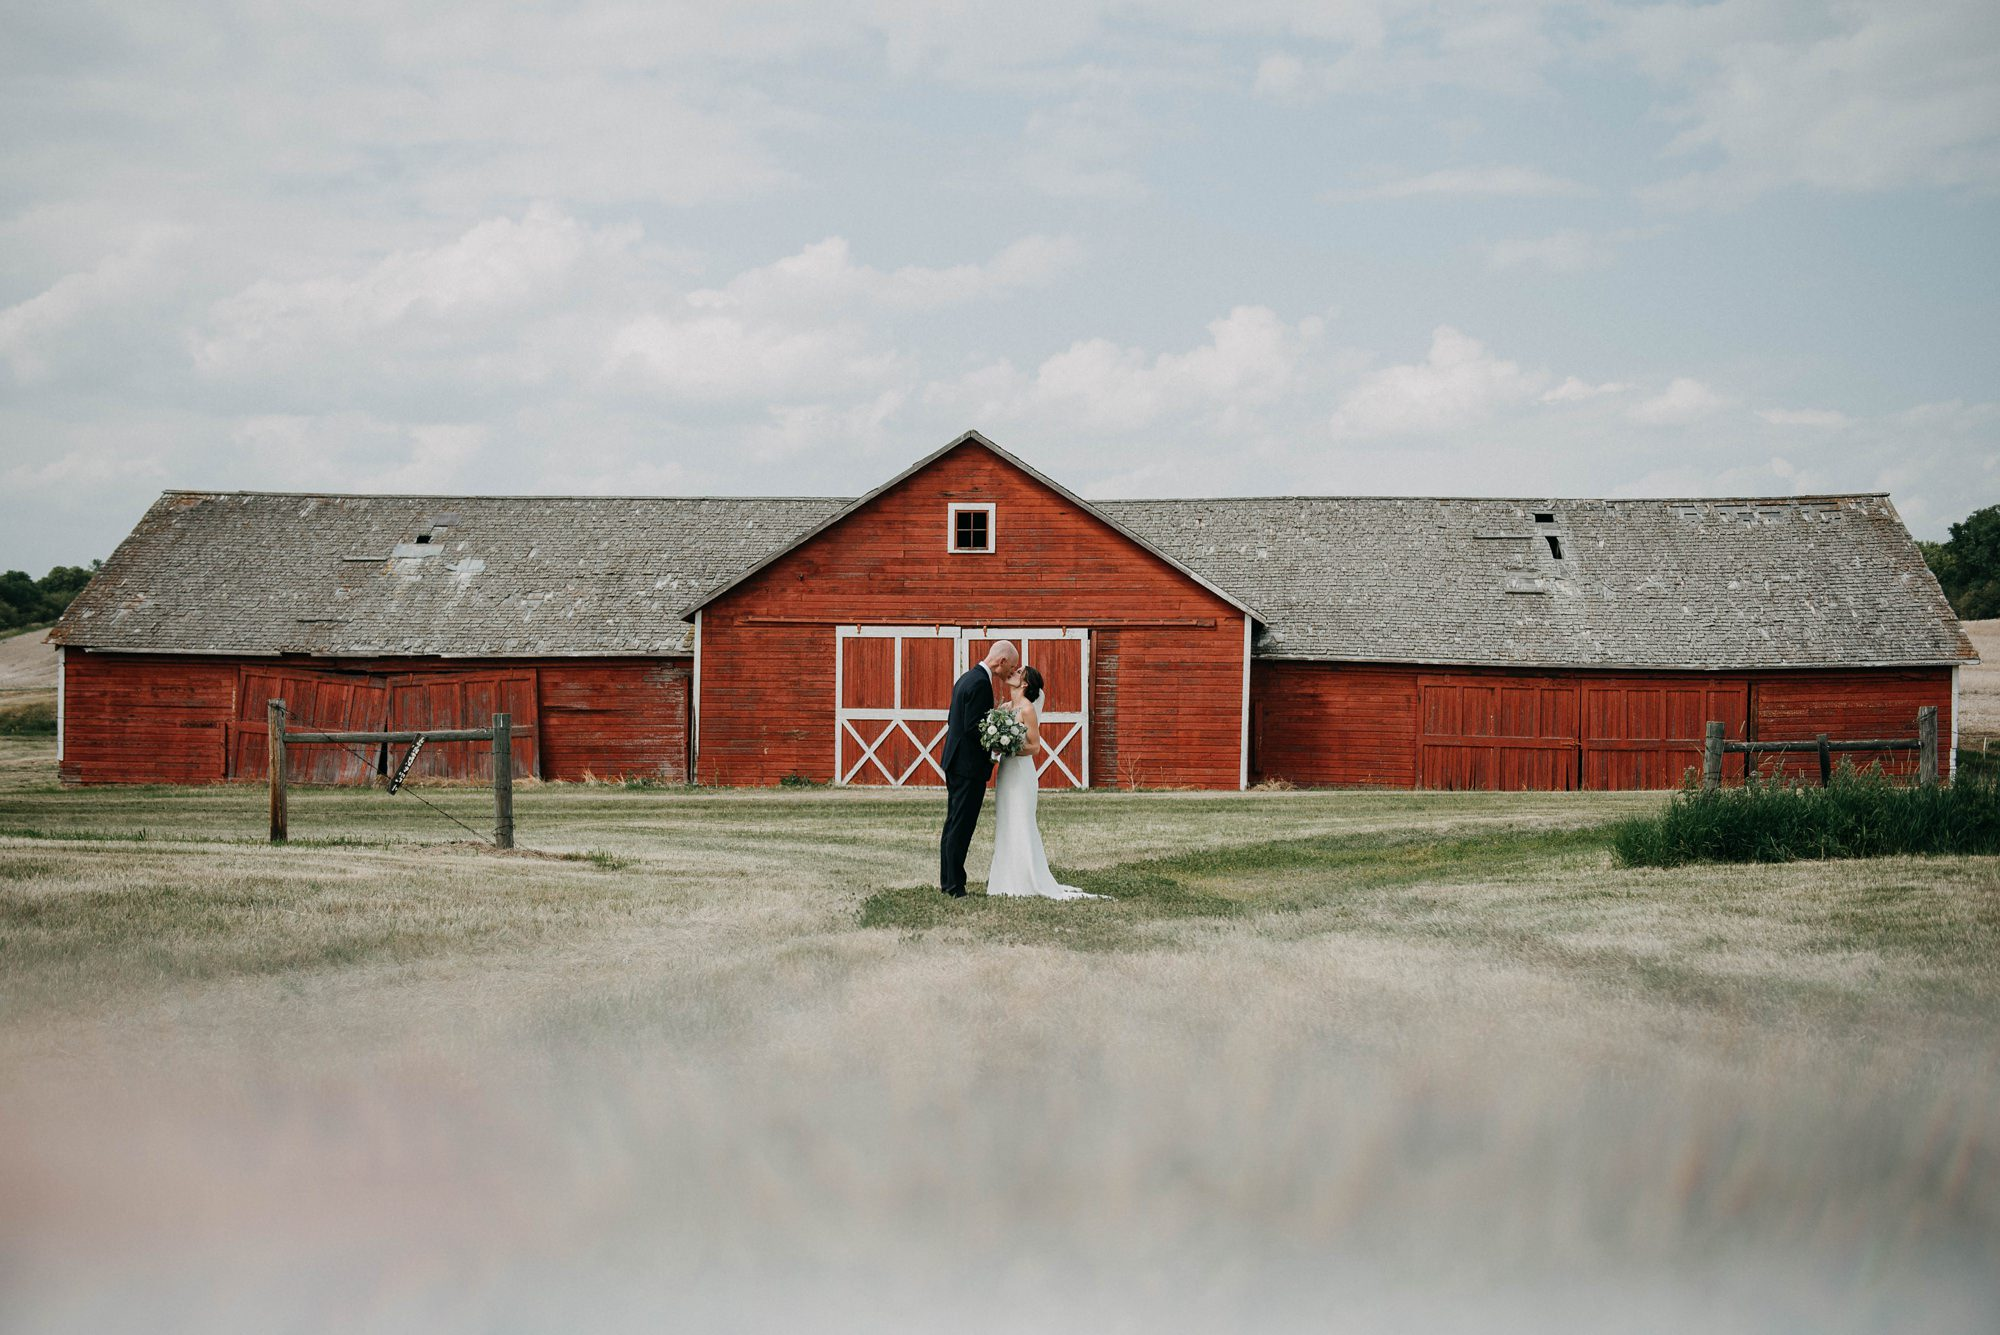 bride and groom in bridal portraits standing in front of a red barn hugging during farm wedding